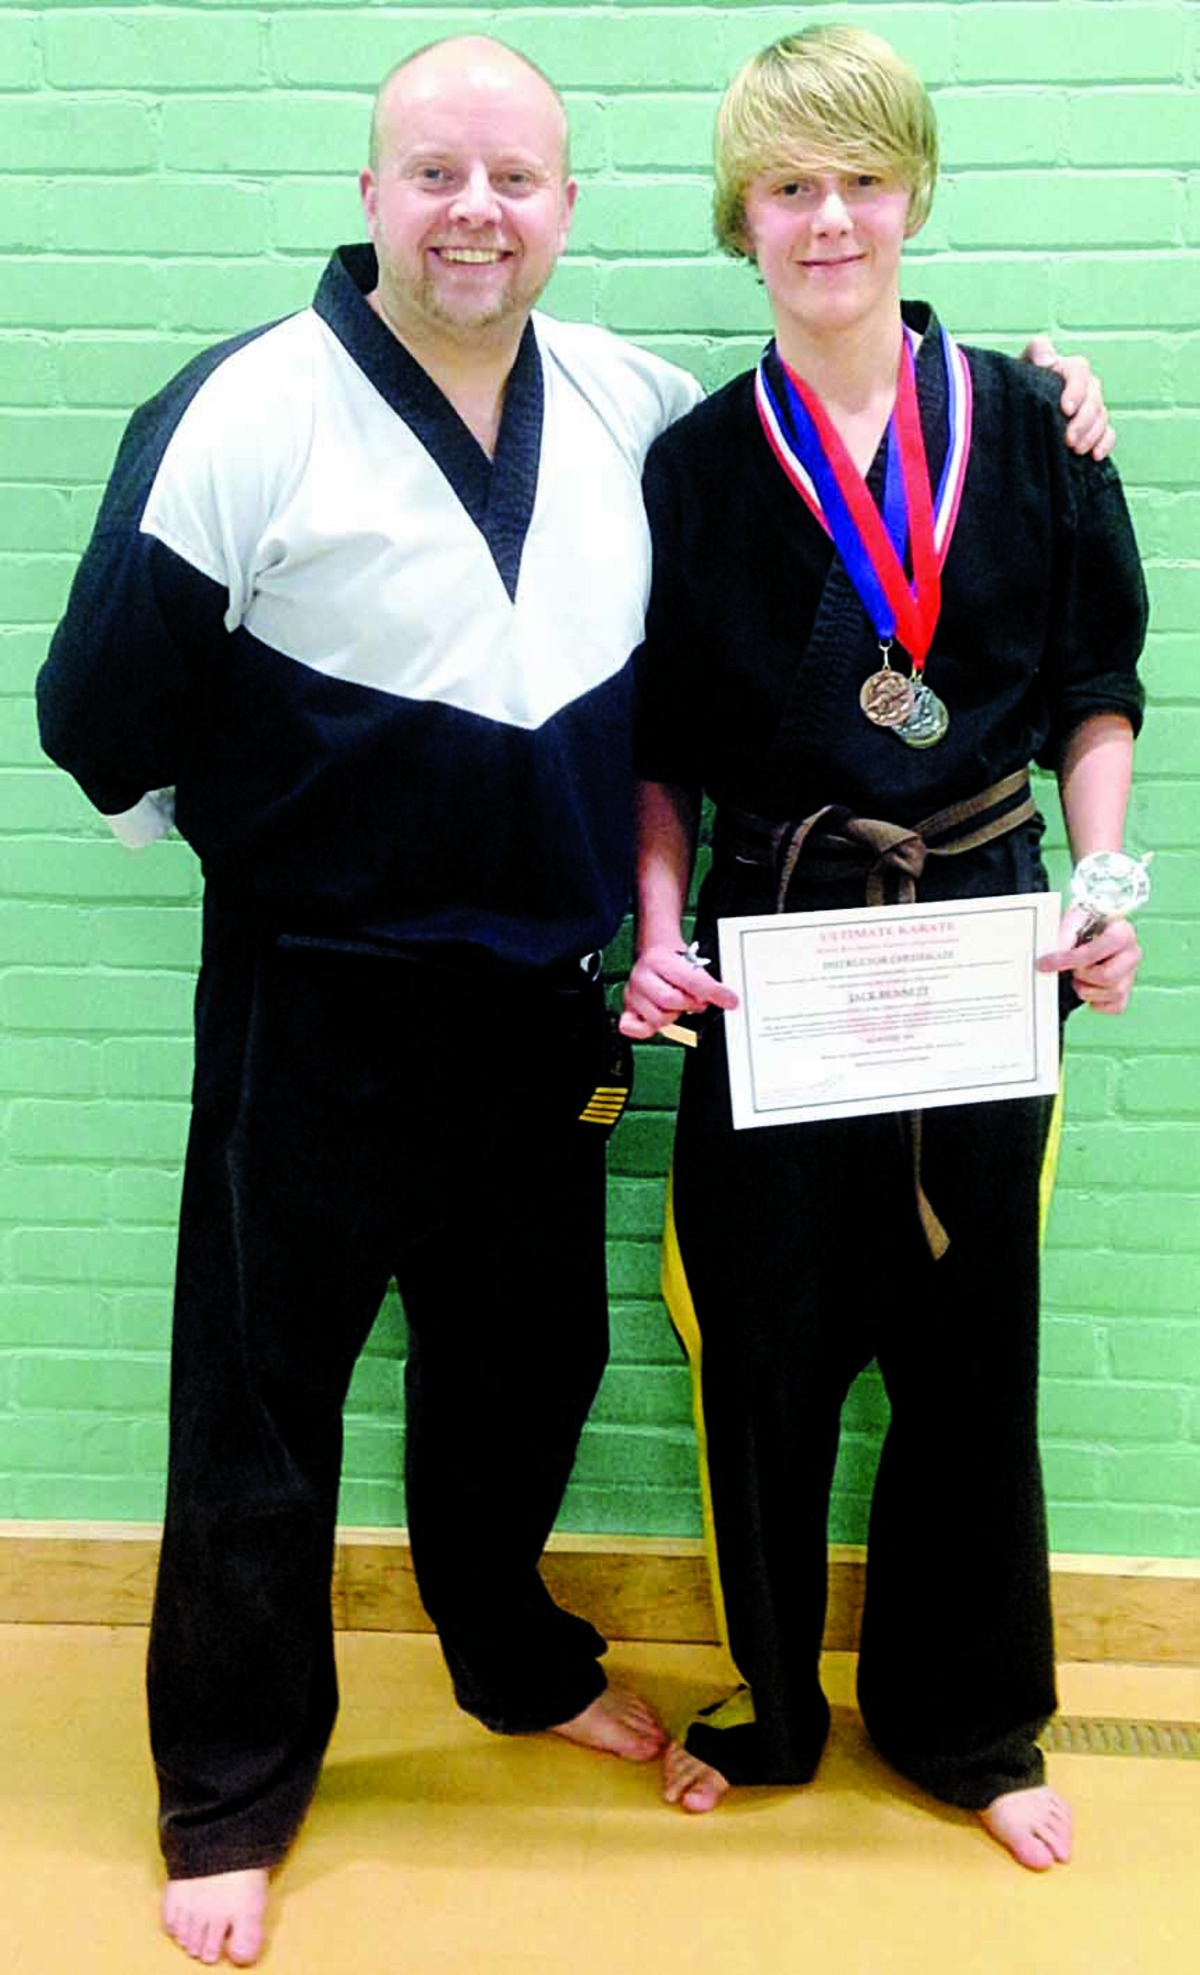 TOP DUO: Ultimate Karate shihan Neil Bennett and his son Jack, who is an award winning competitor.